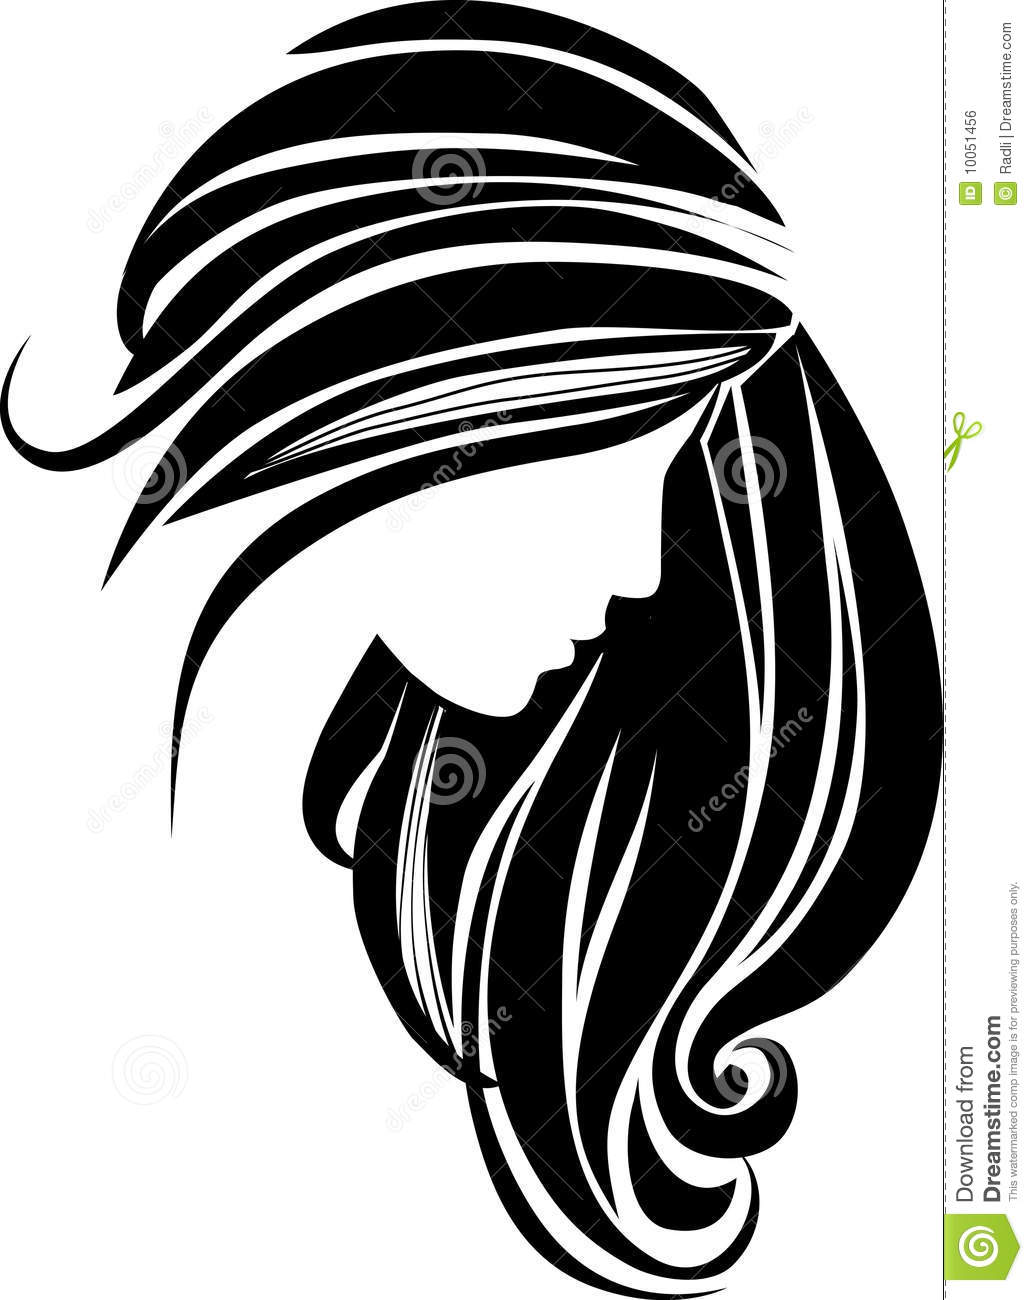 Hair Icon Royalty Free Stock Image Image 10051456